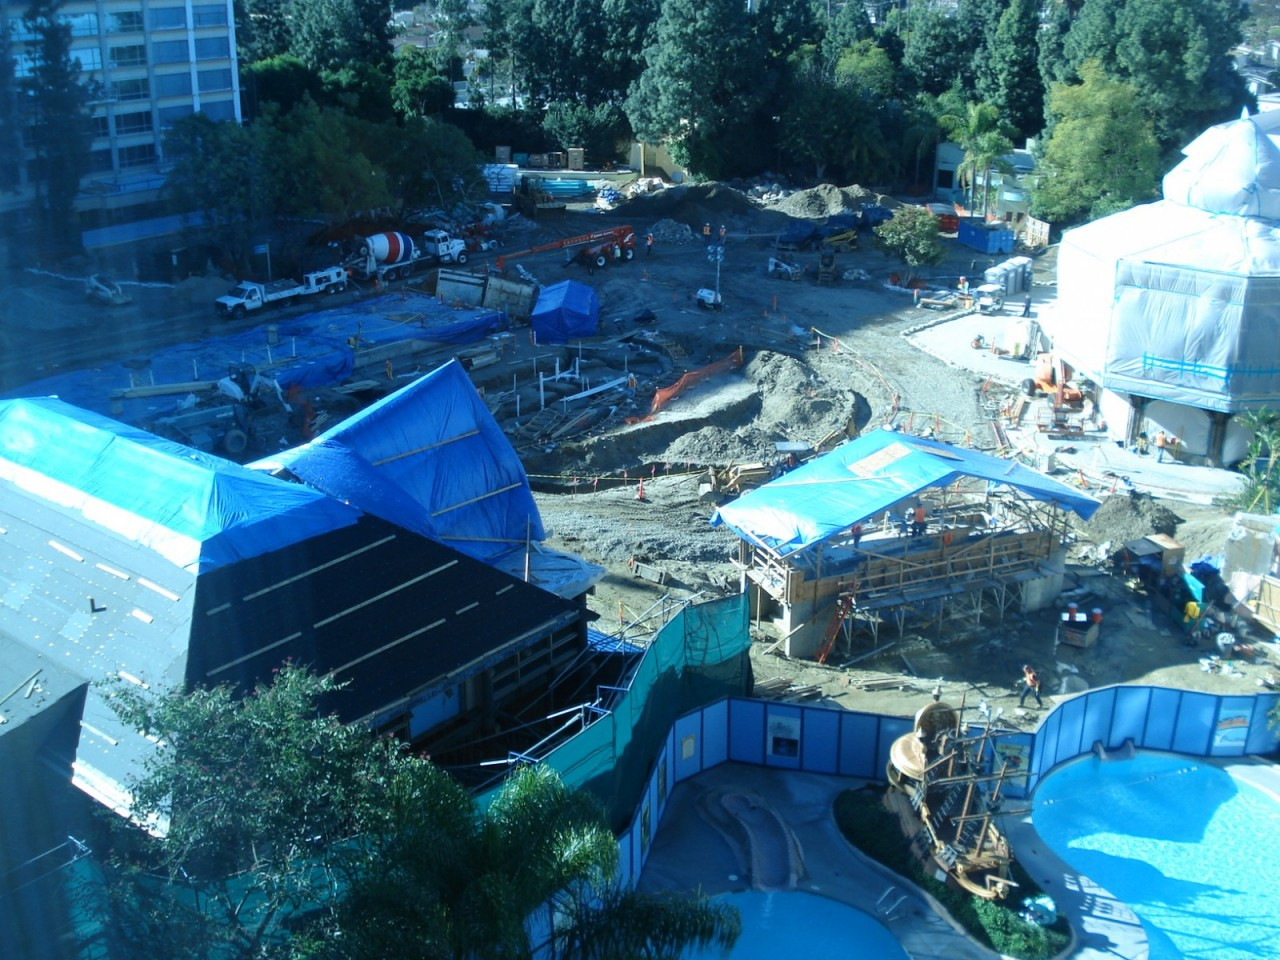 Disneyland Hotel Courtyard view from January